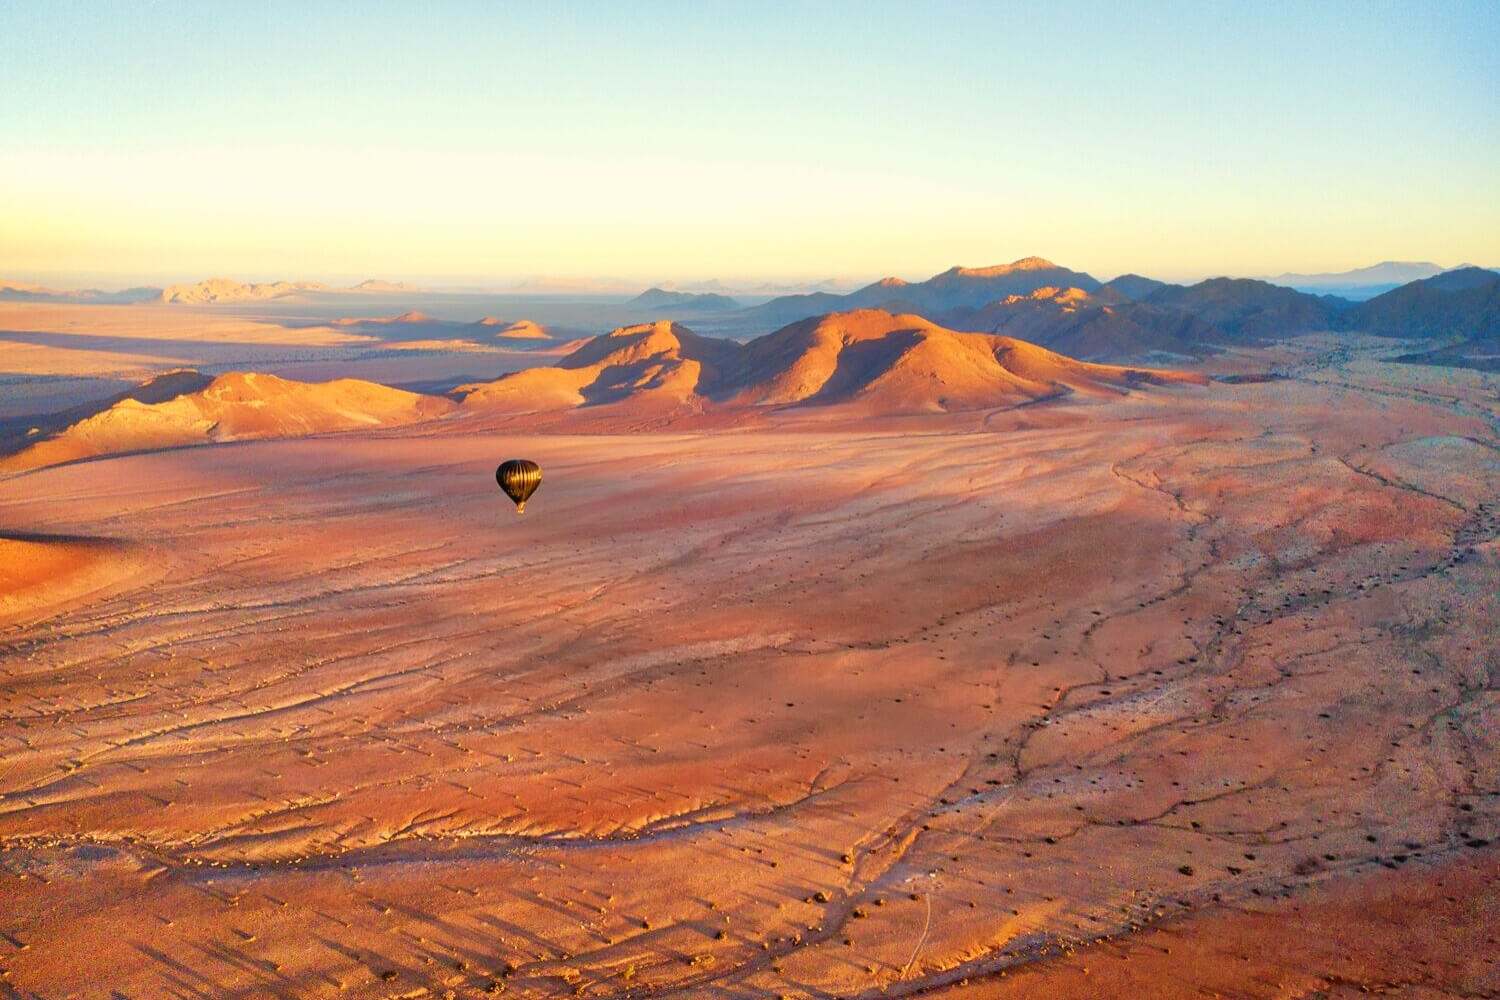 Hot air balloon over the Dubai desert conservation reserve